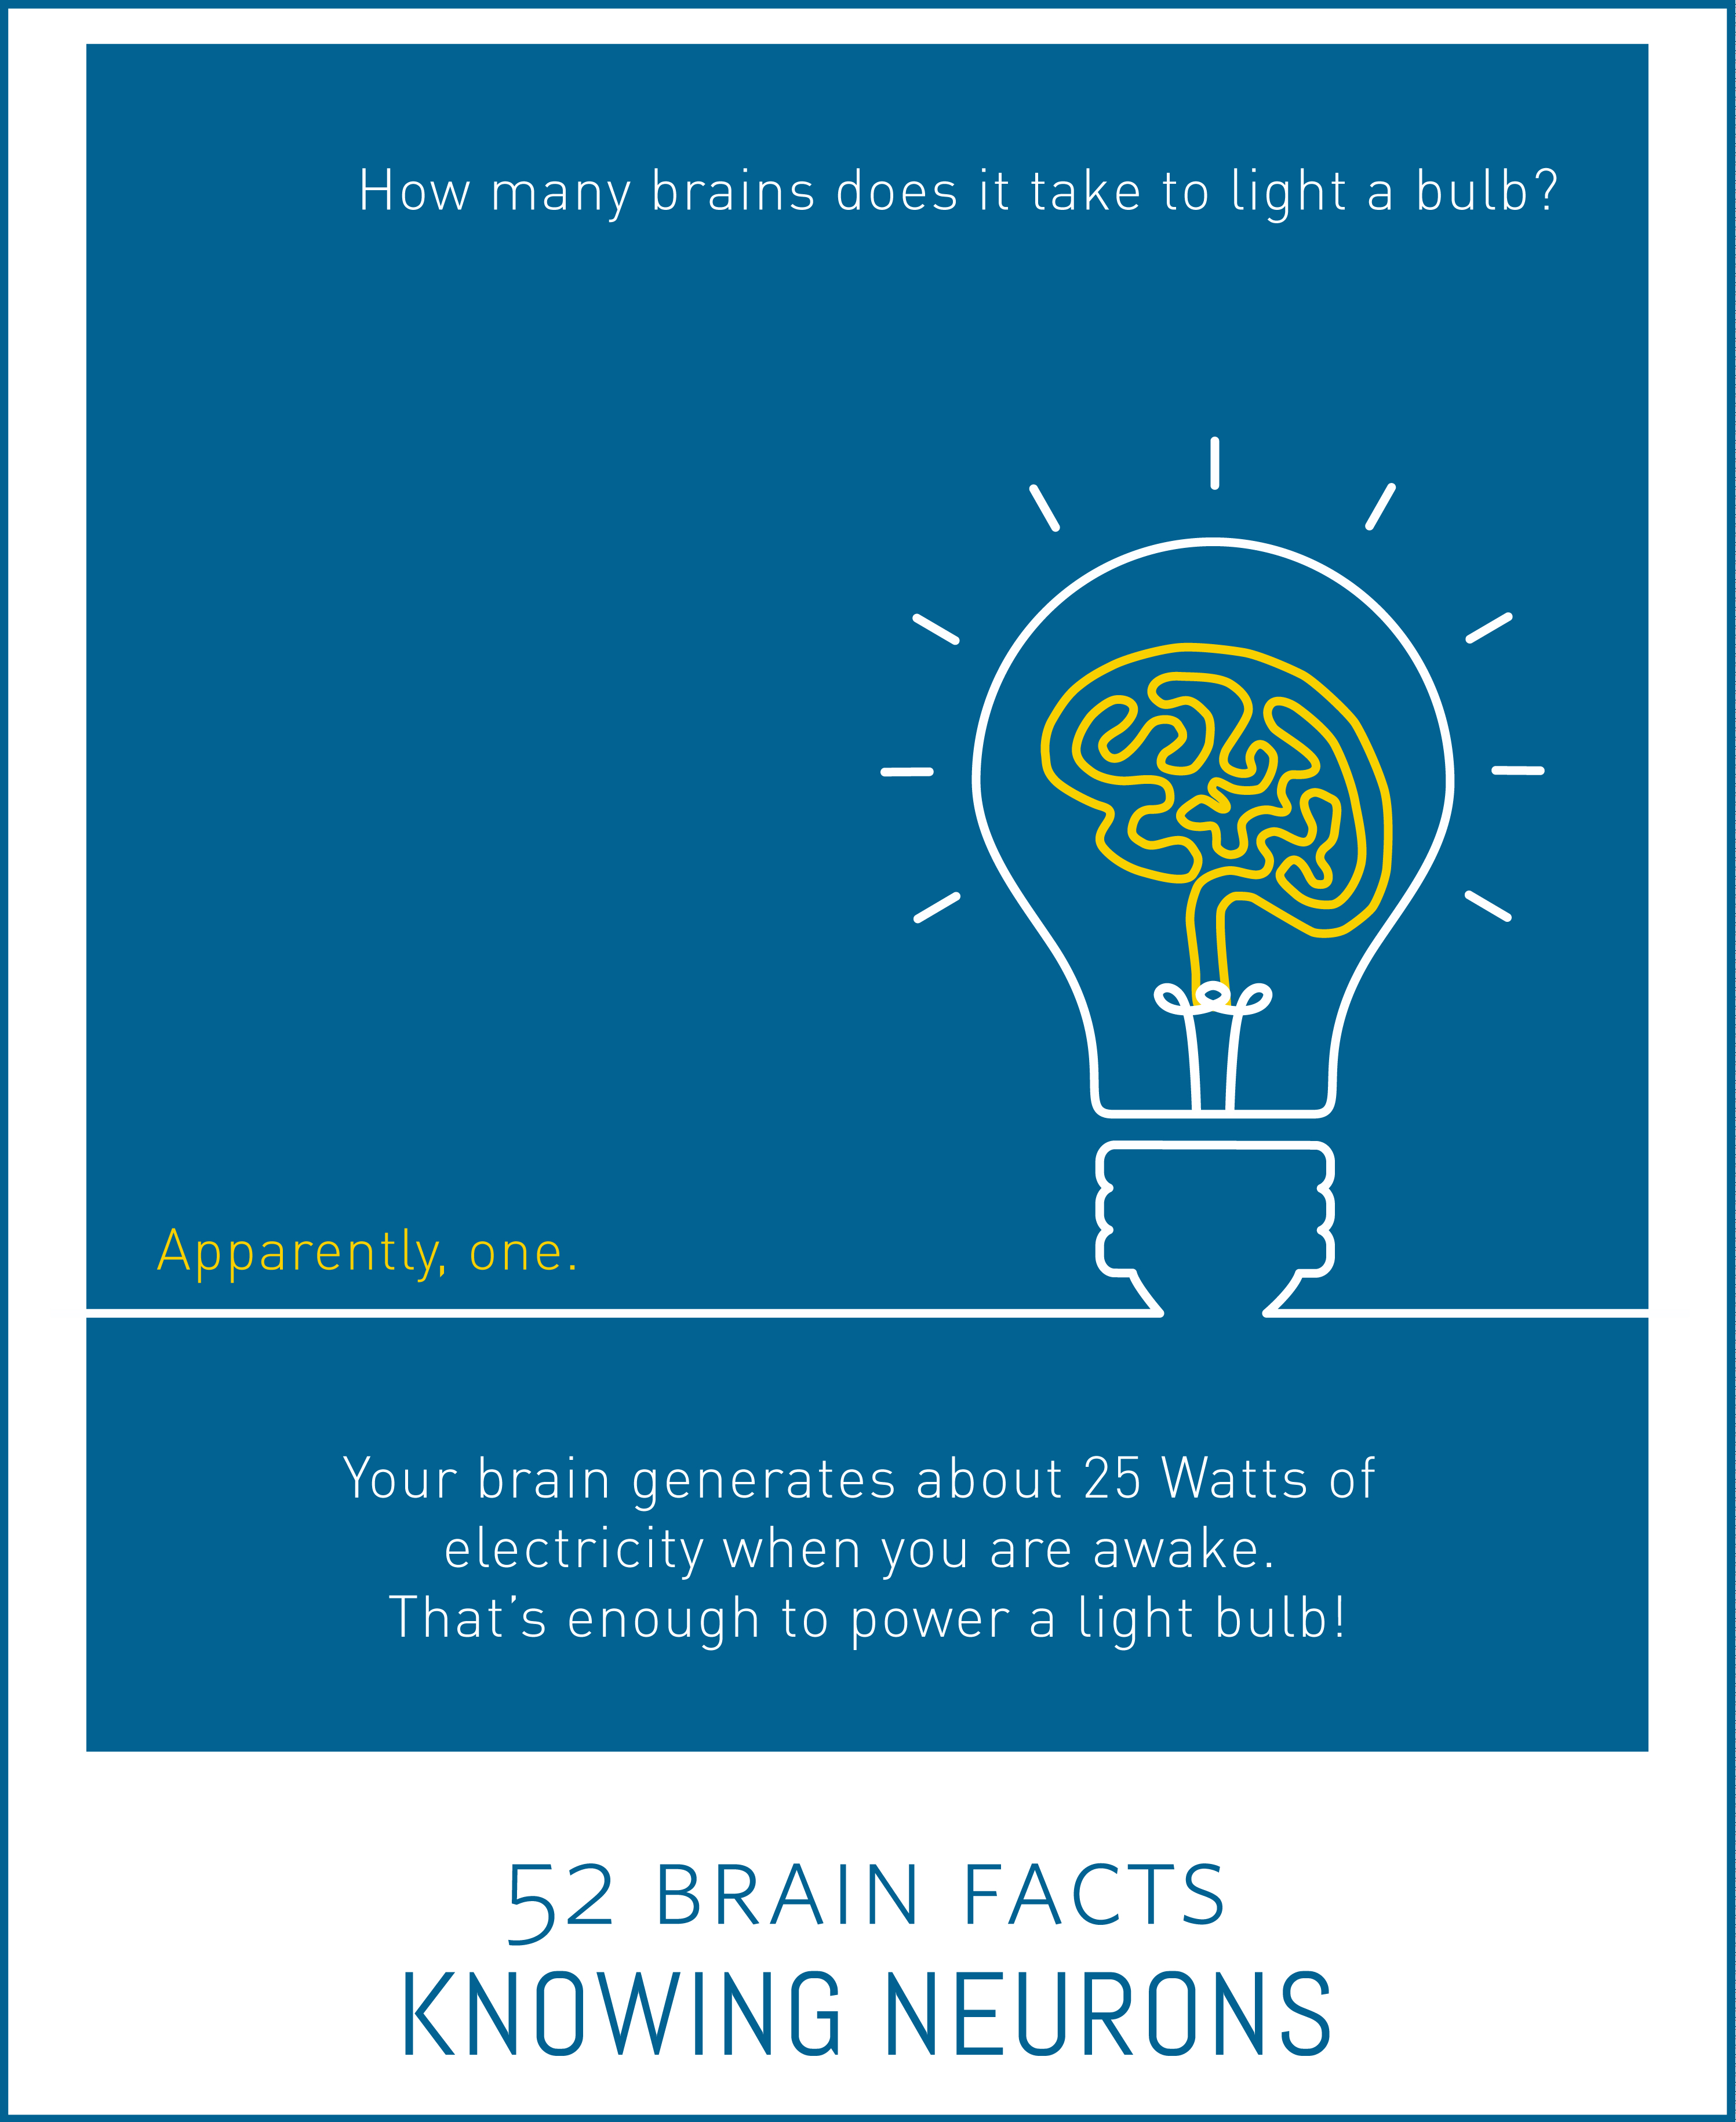 Myth or Fact? It would take ten human brains to match the energy consumption of one light bulb.